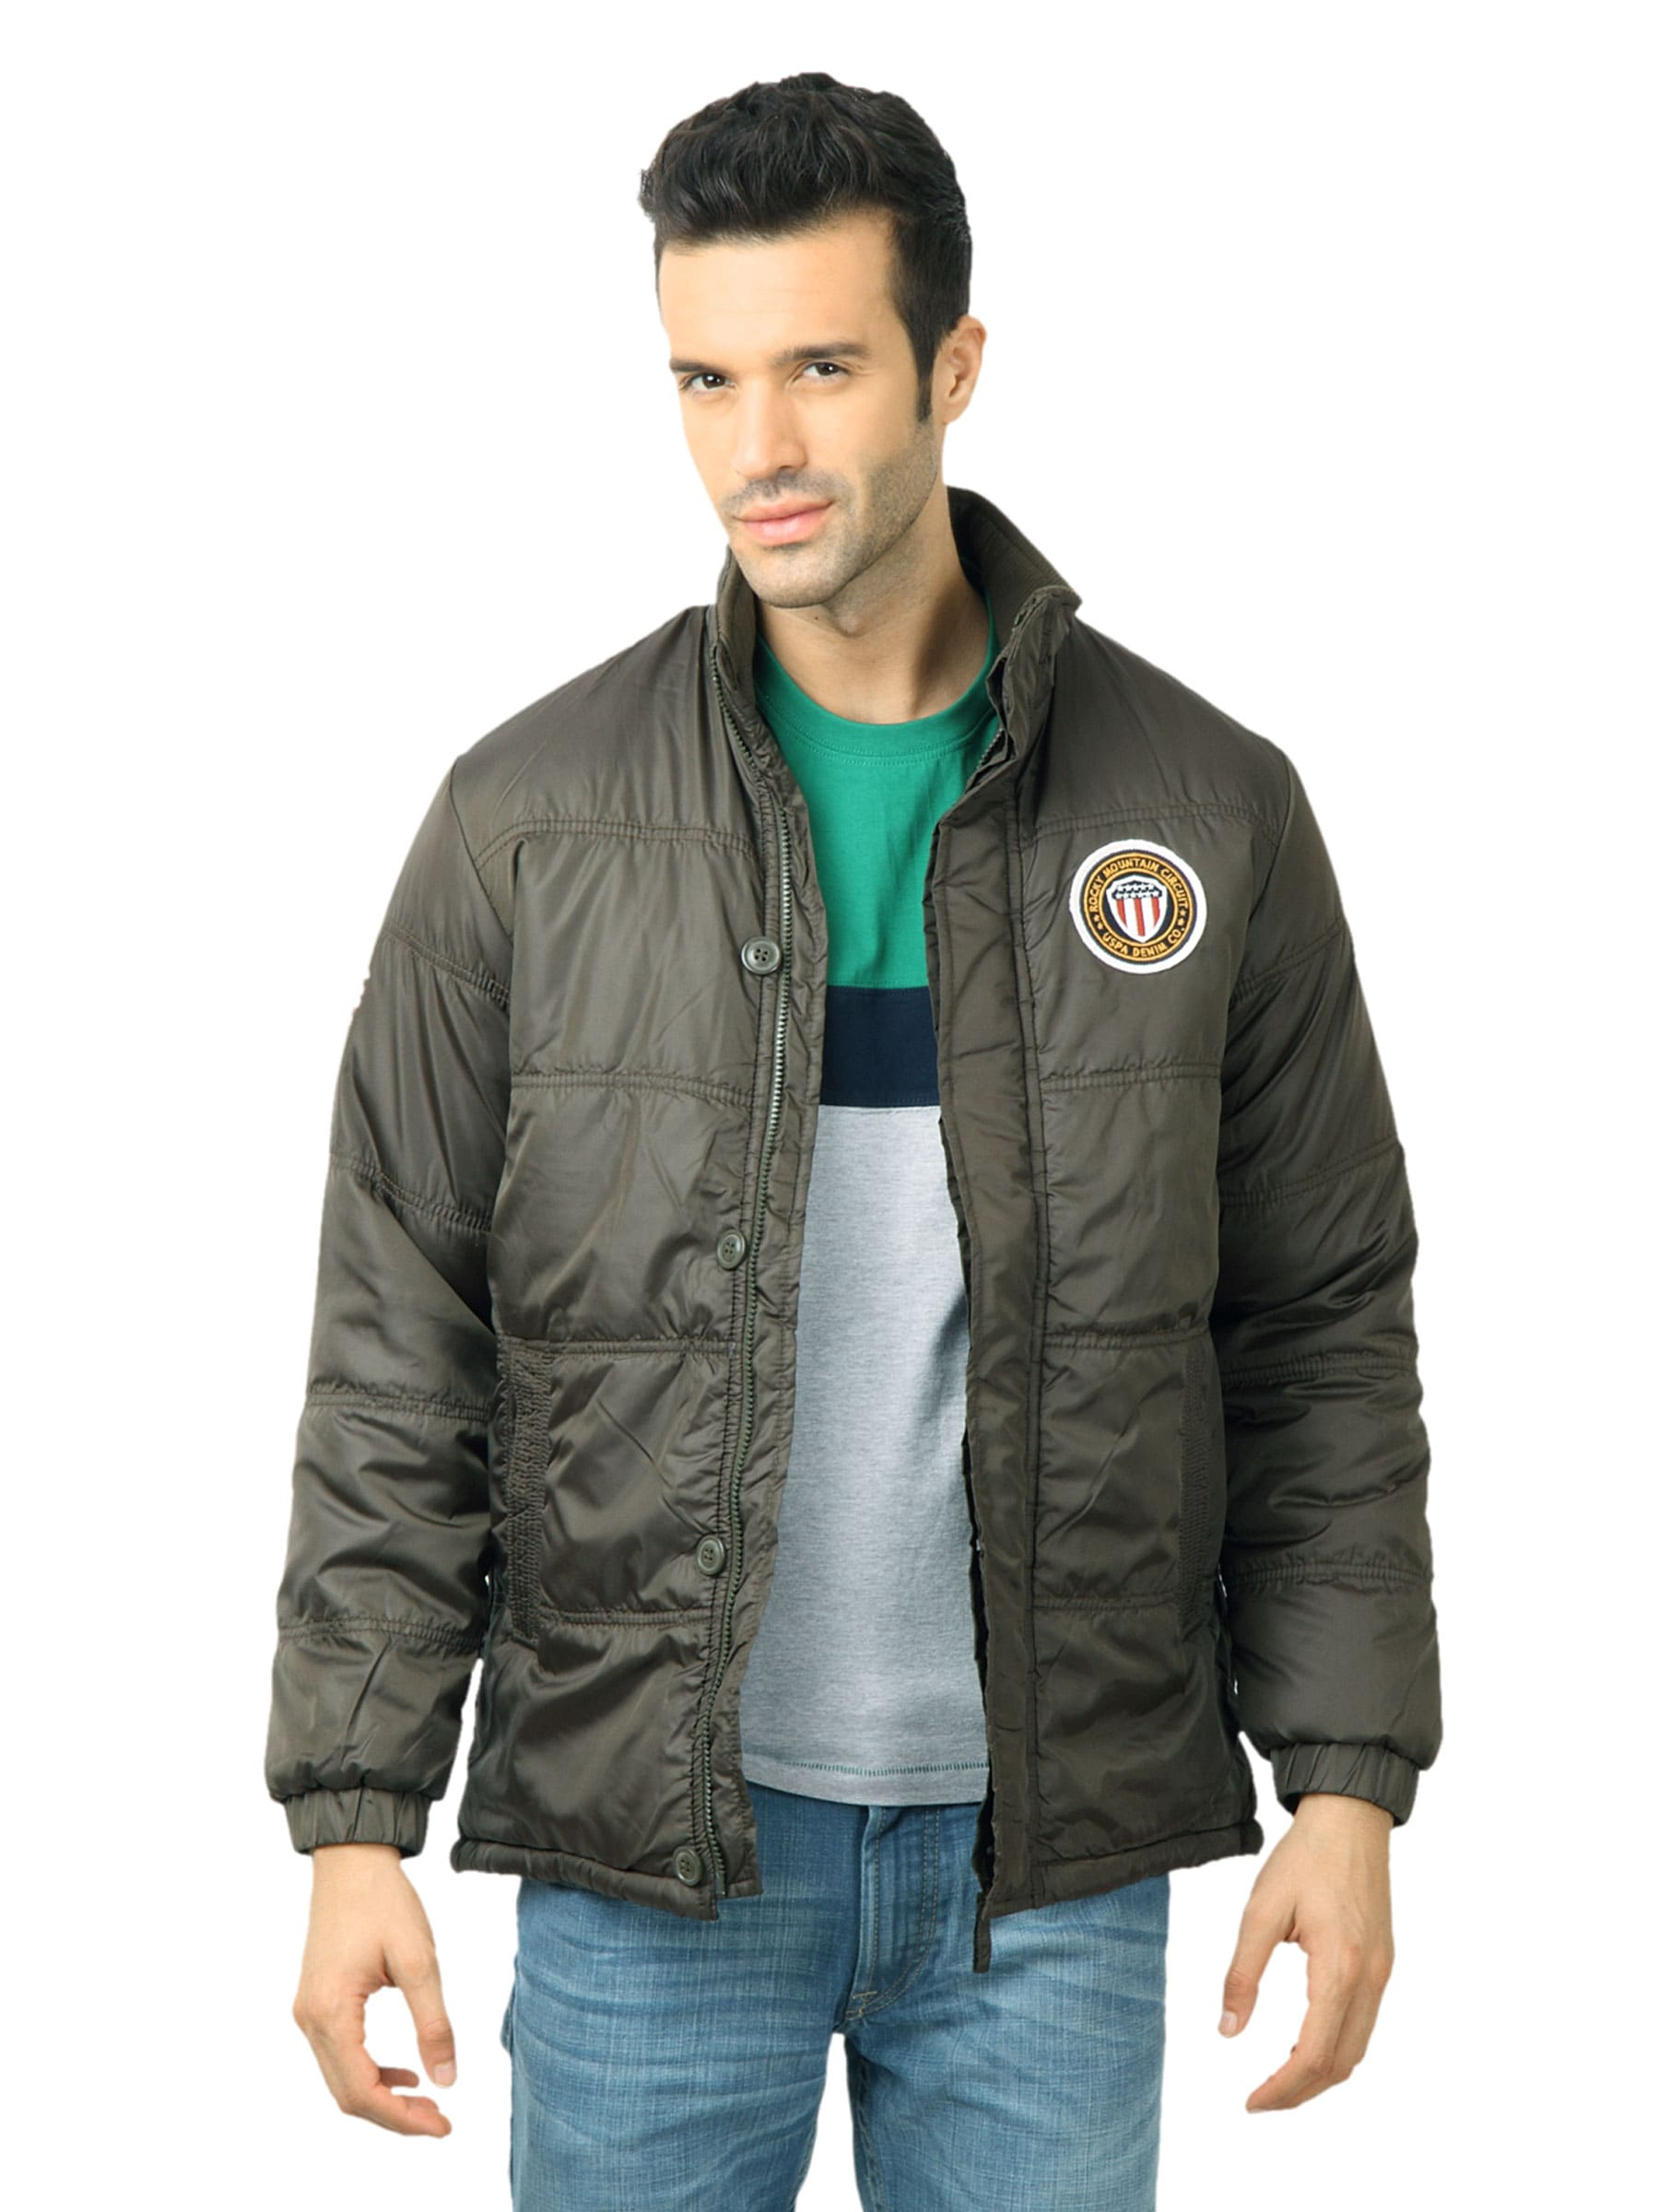 U.S. Polo Assn. Men Solid Olive Jackets